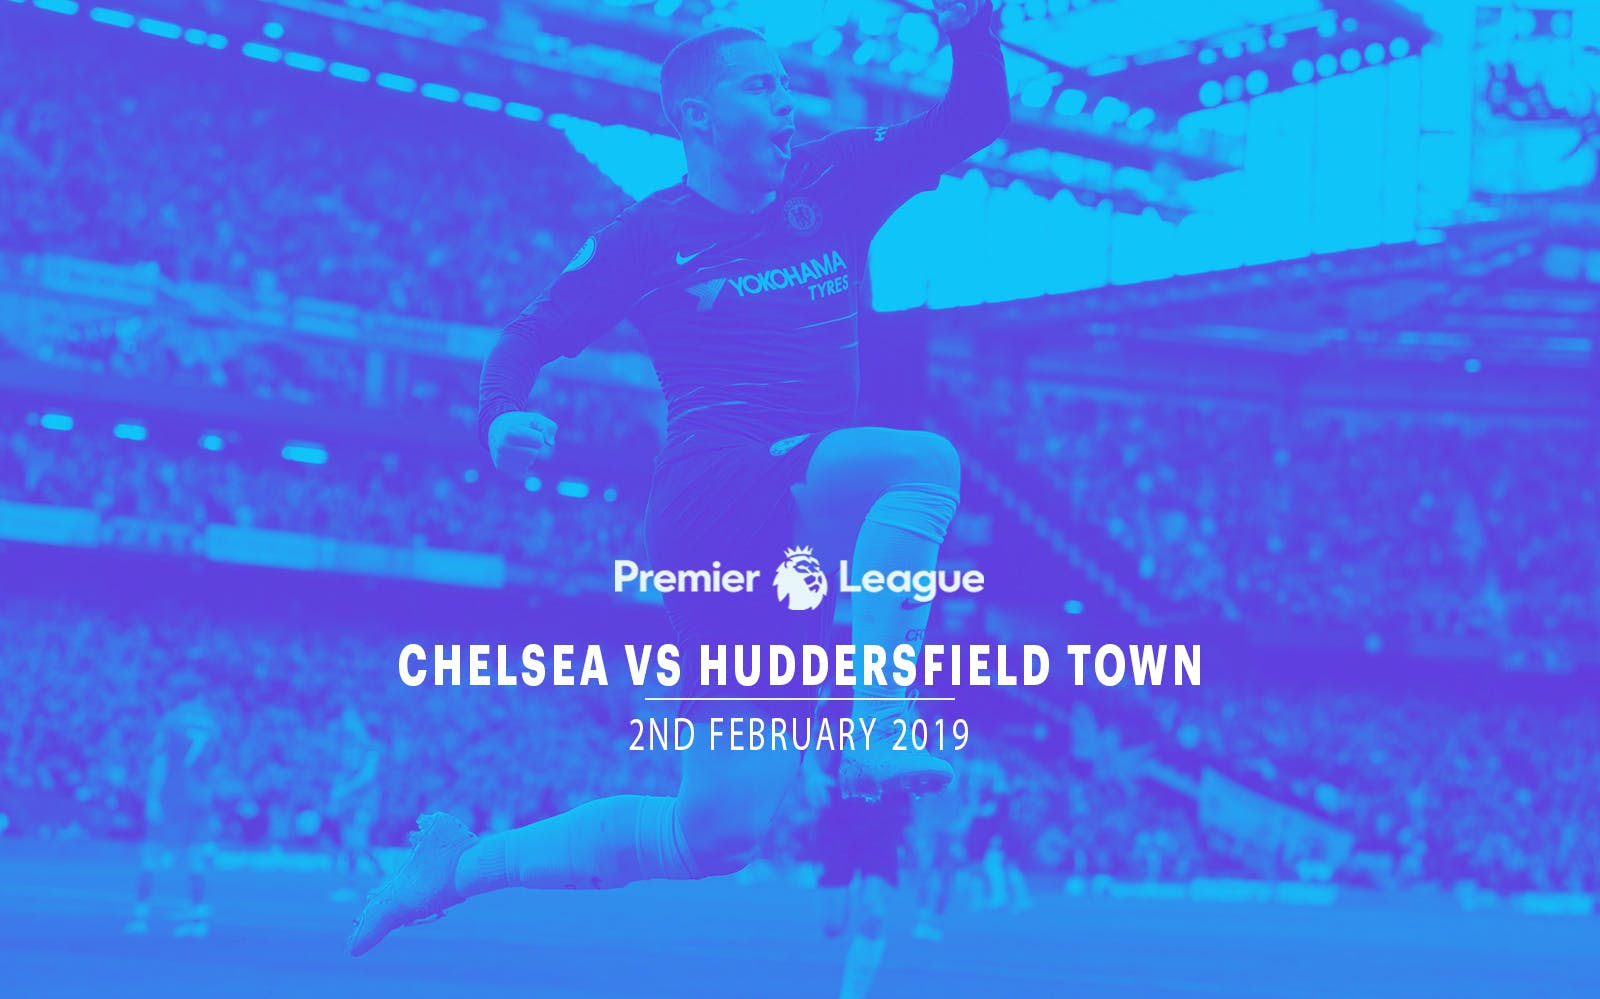 chelsea vs huddersfield town - 2nd feb'19-1